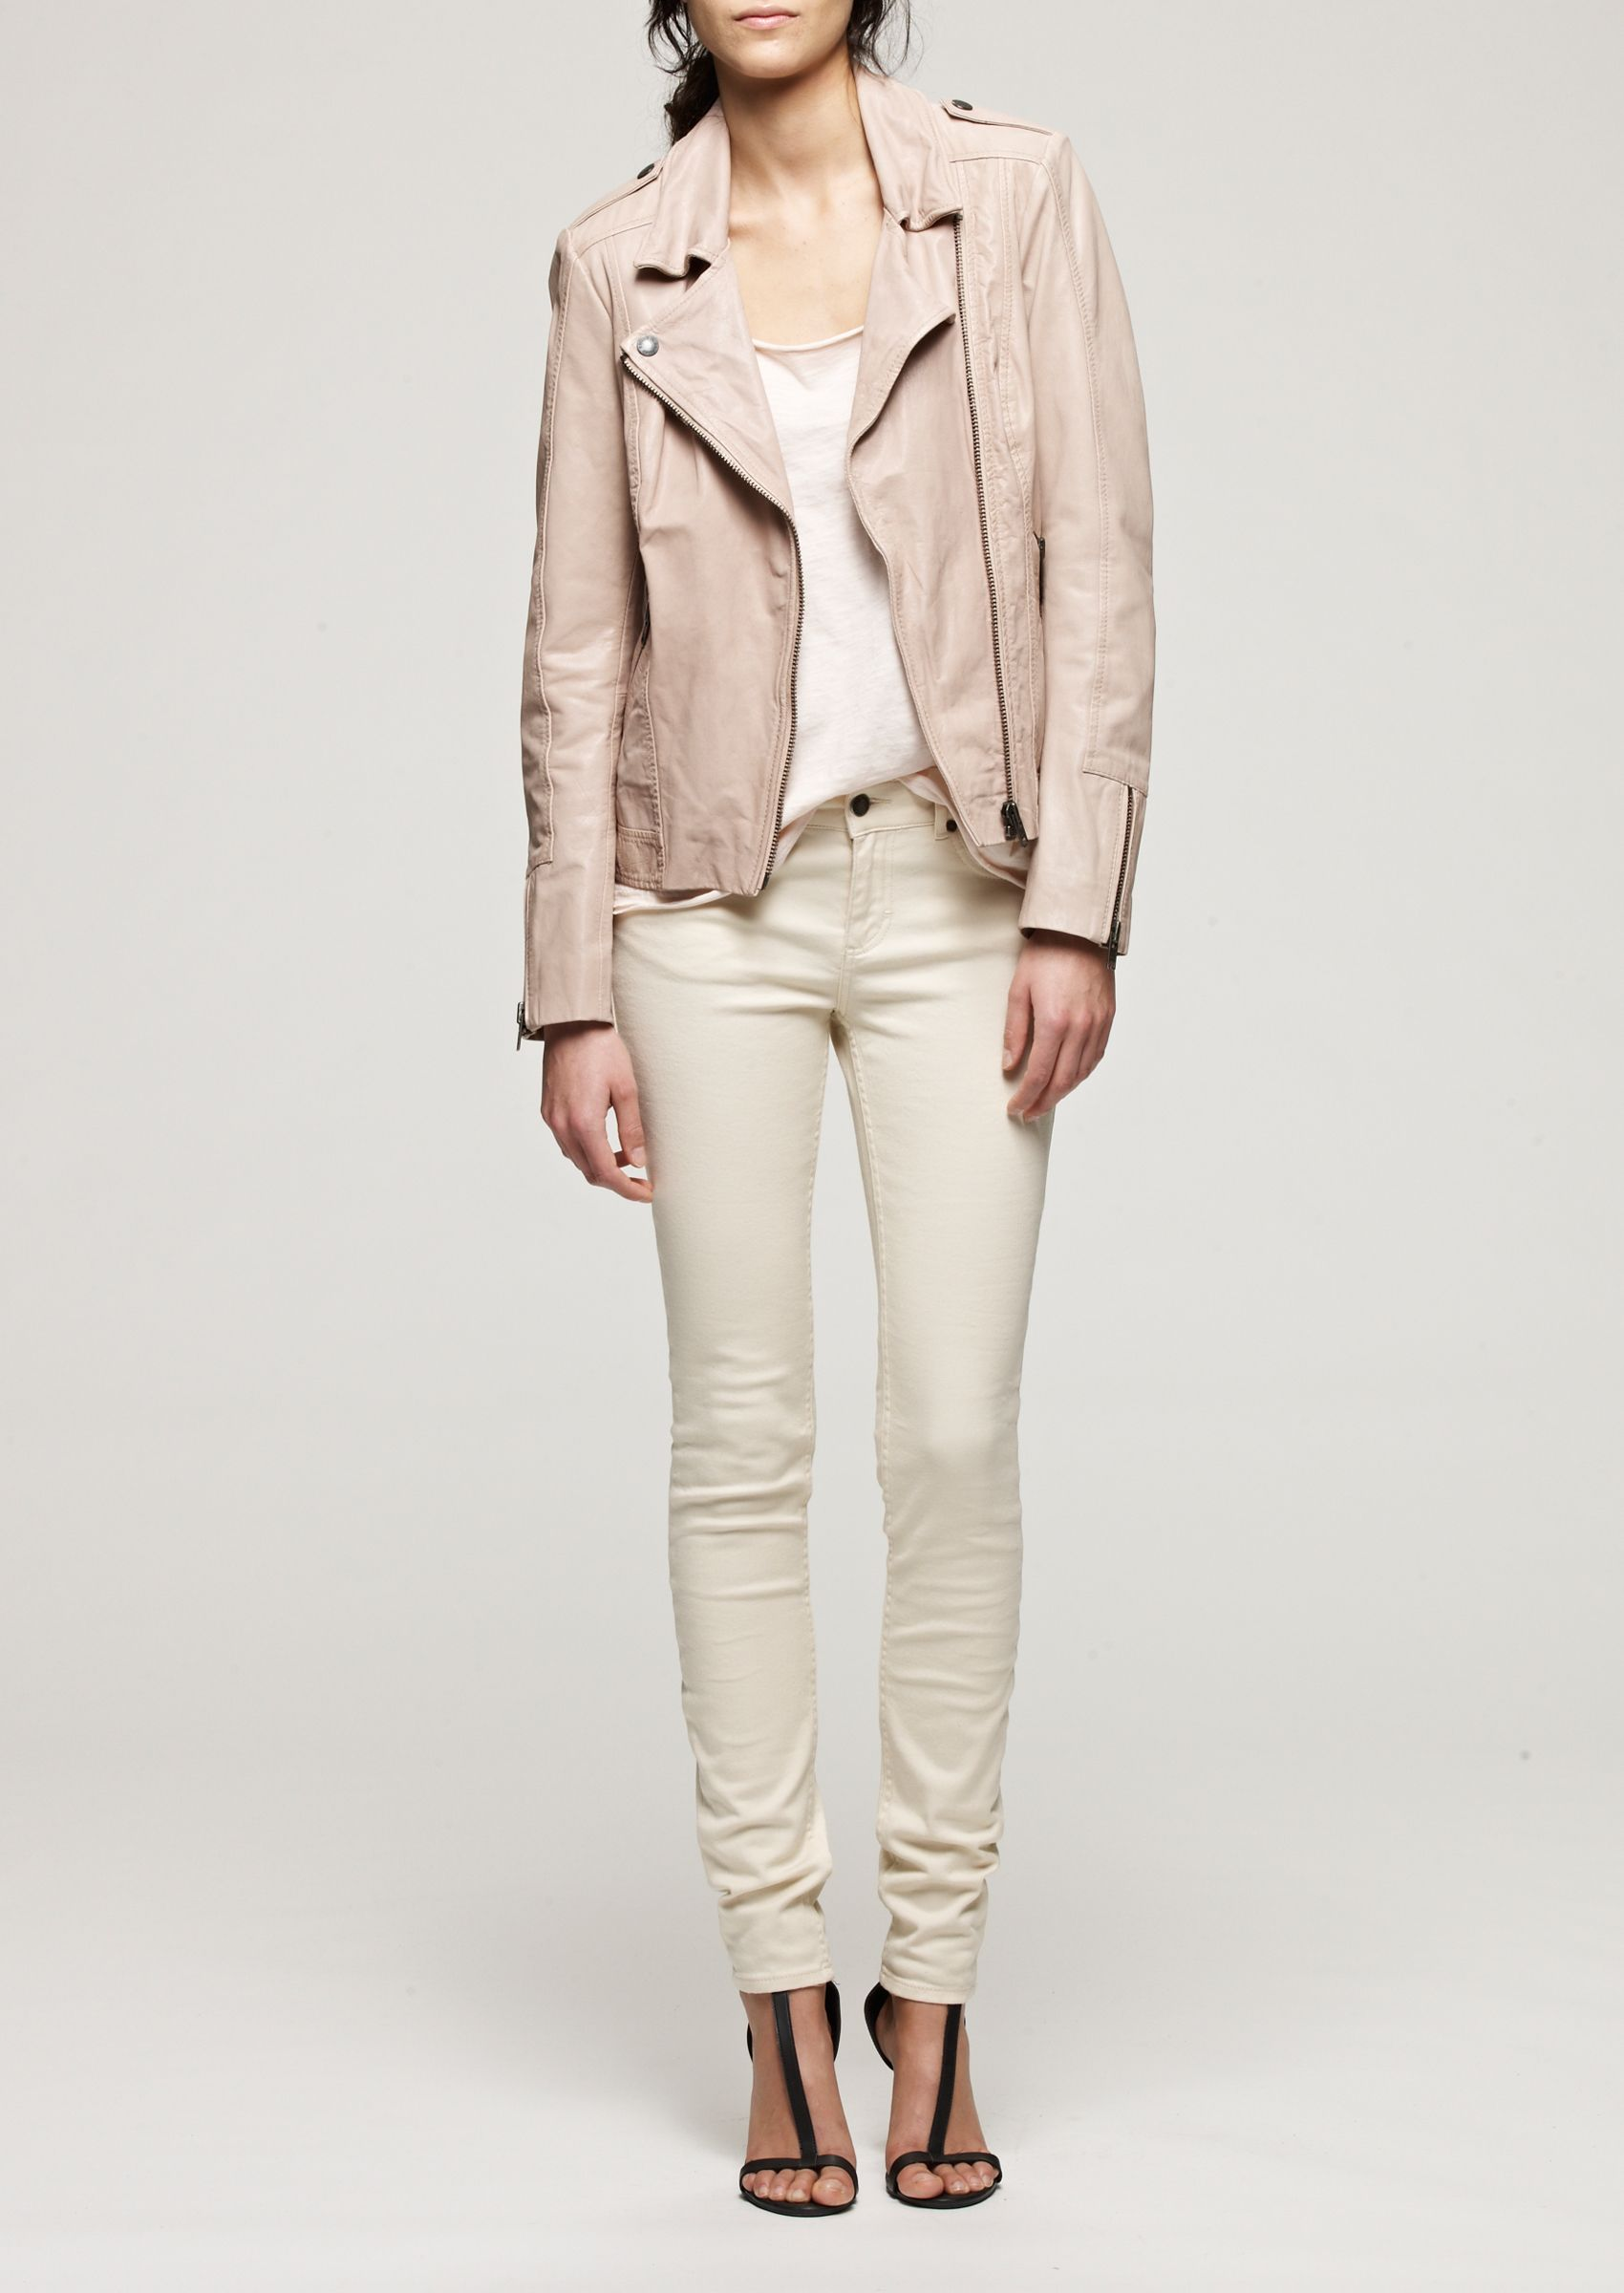 Aliah Leather Jacket http://shop.twisttango.com/products/3274-aliah ...